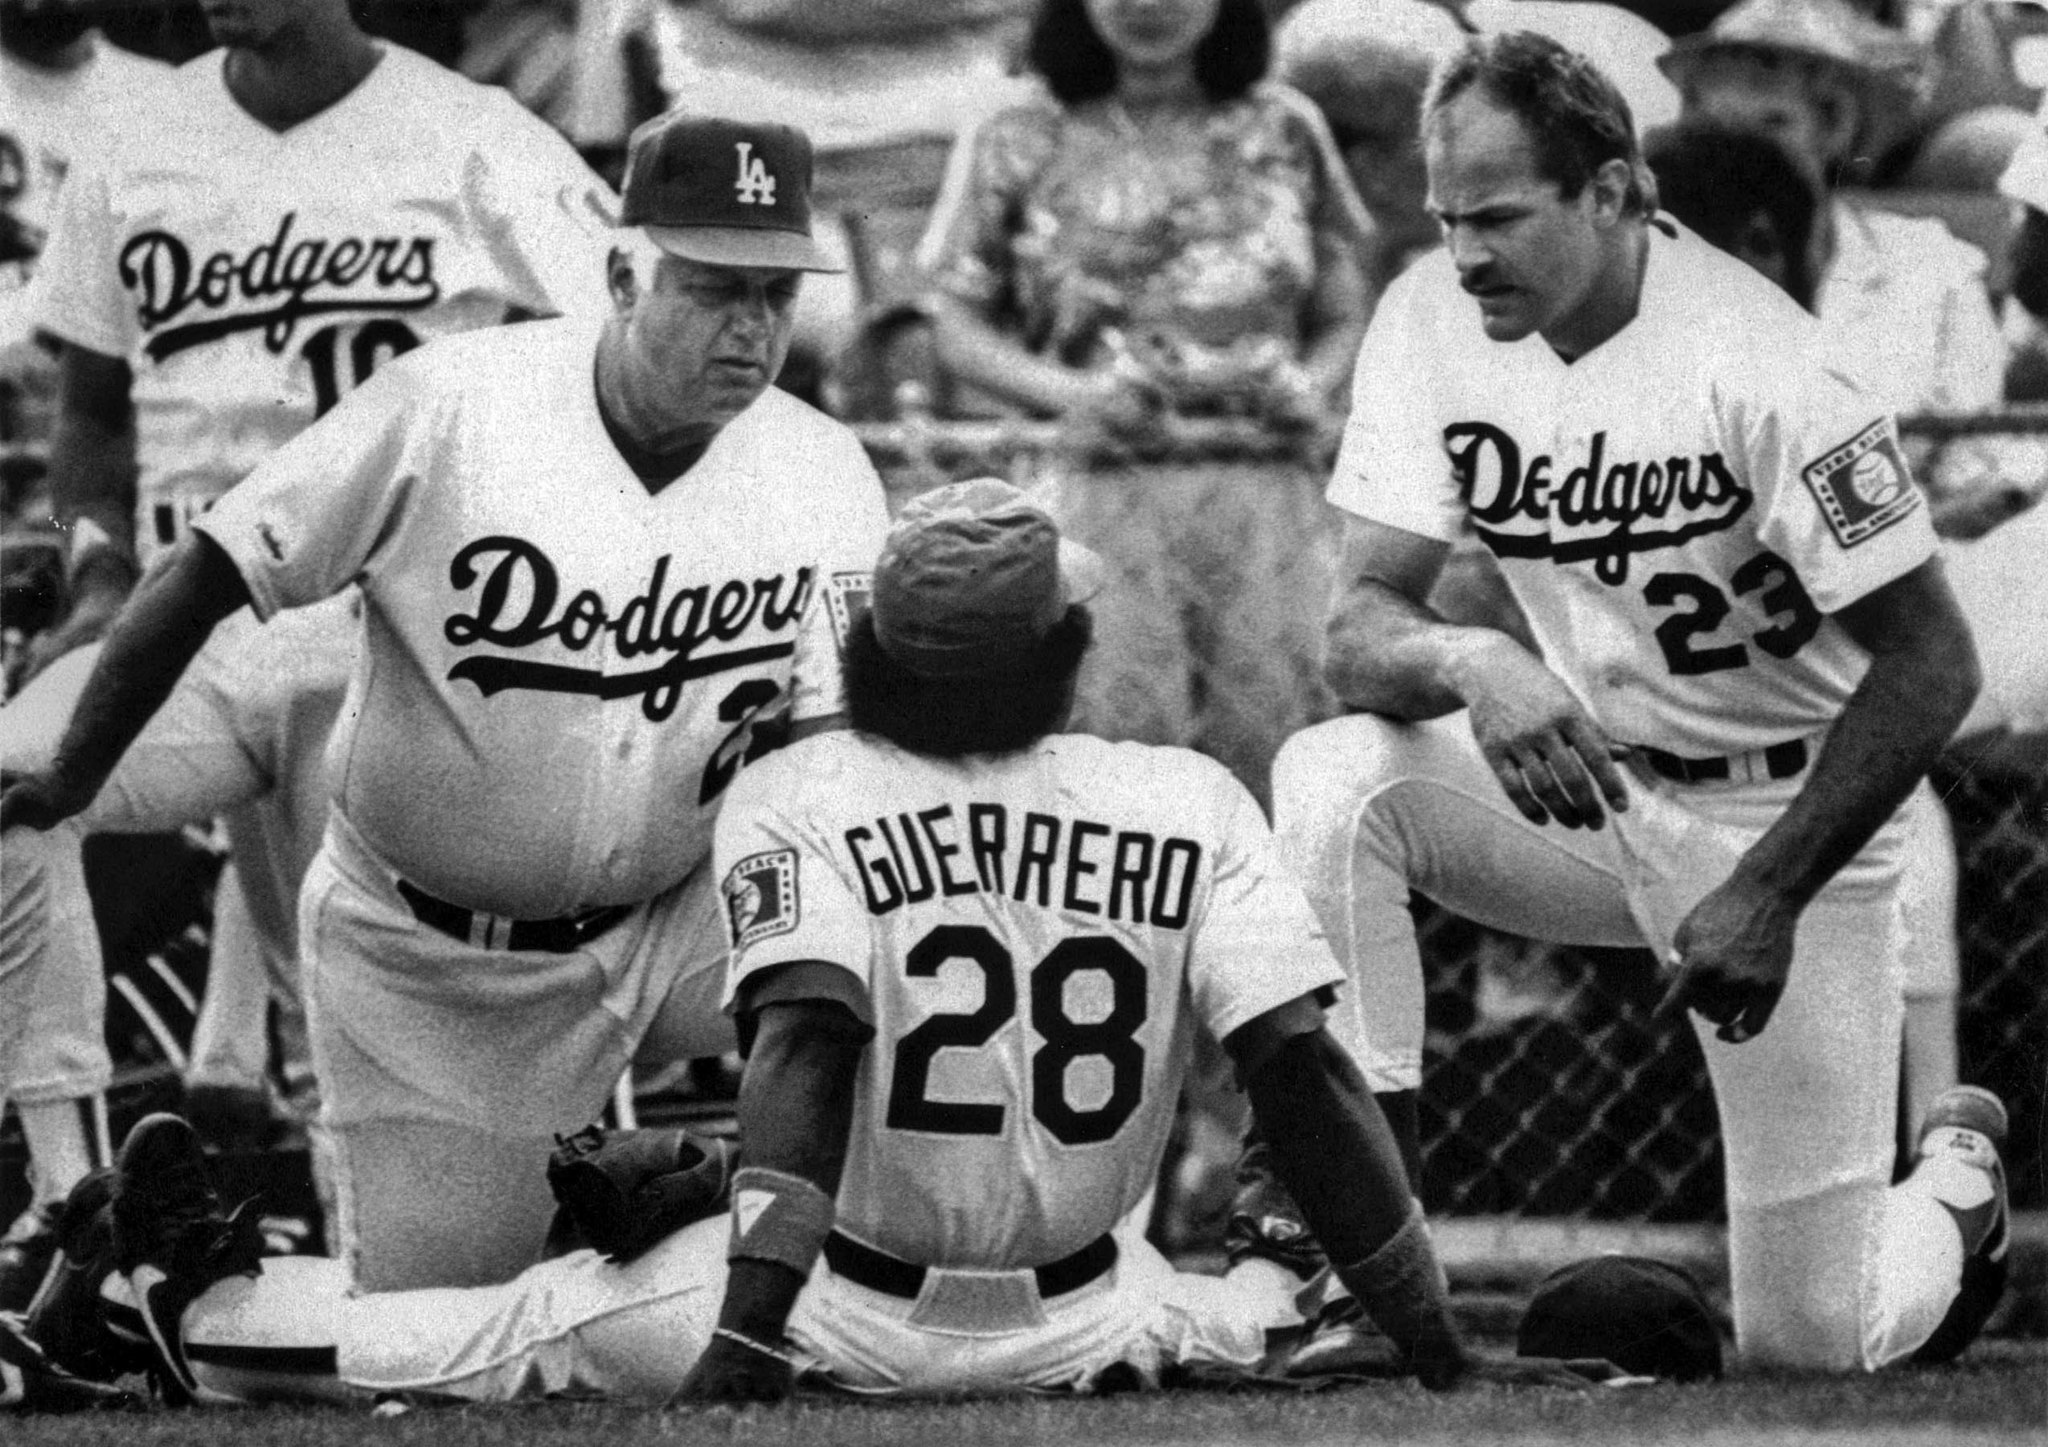 March 4, 1988: Tommy Lasorda, Pedro Guerrero and Kirk Gibson in Florida